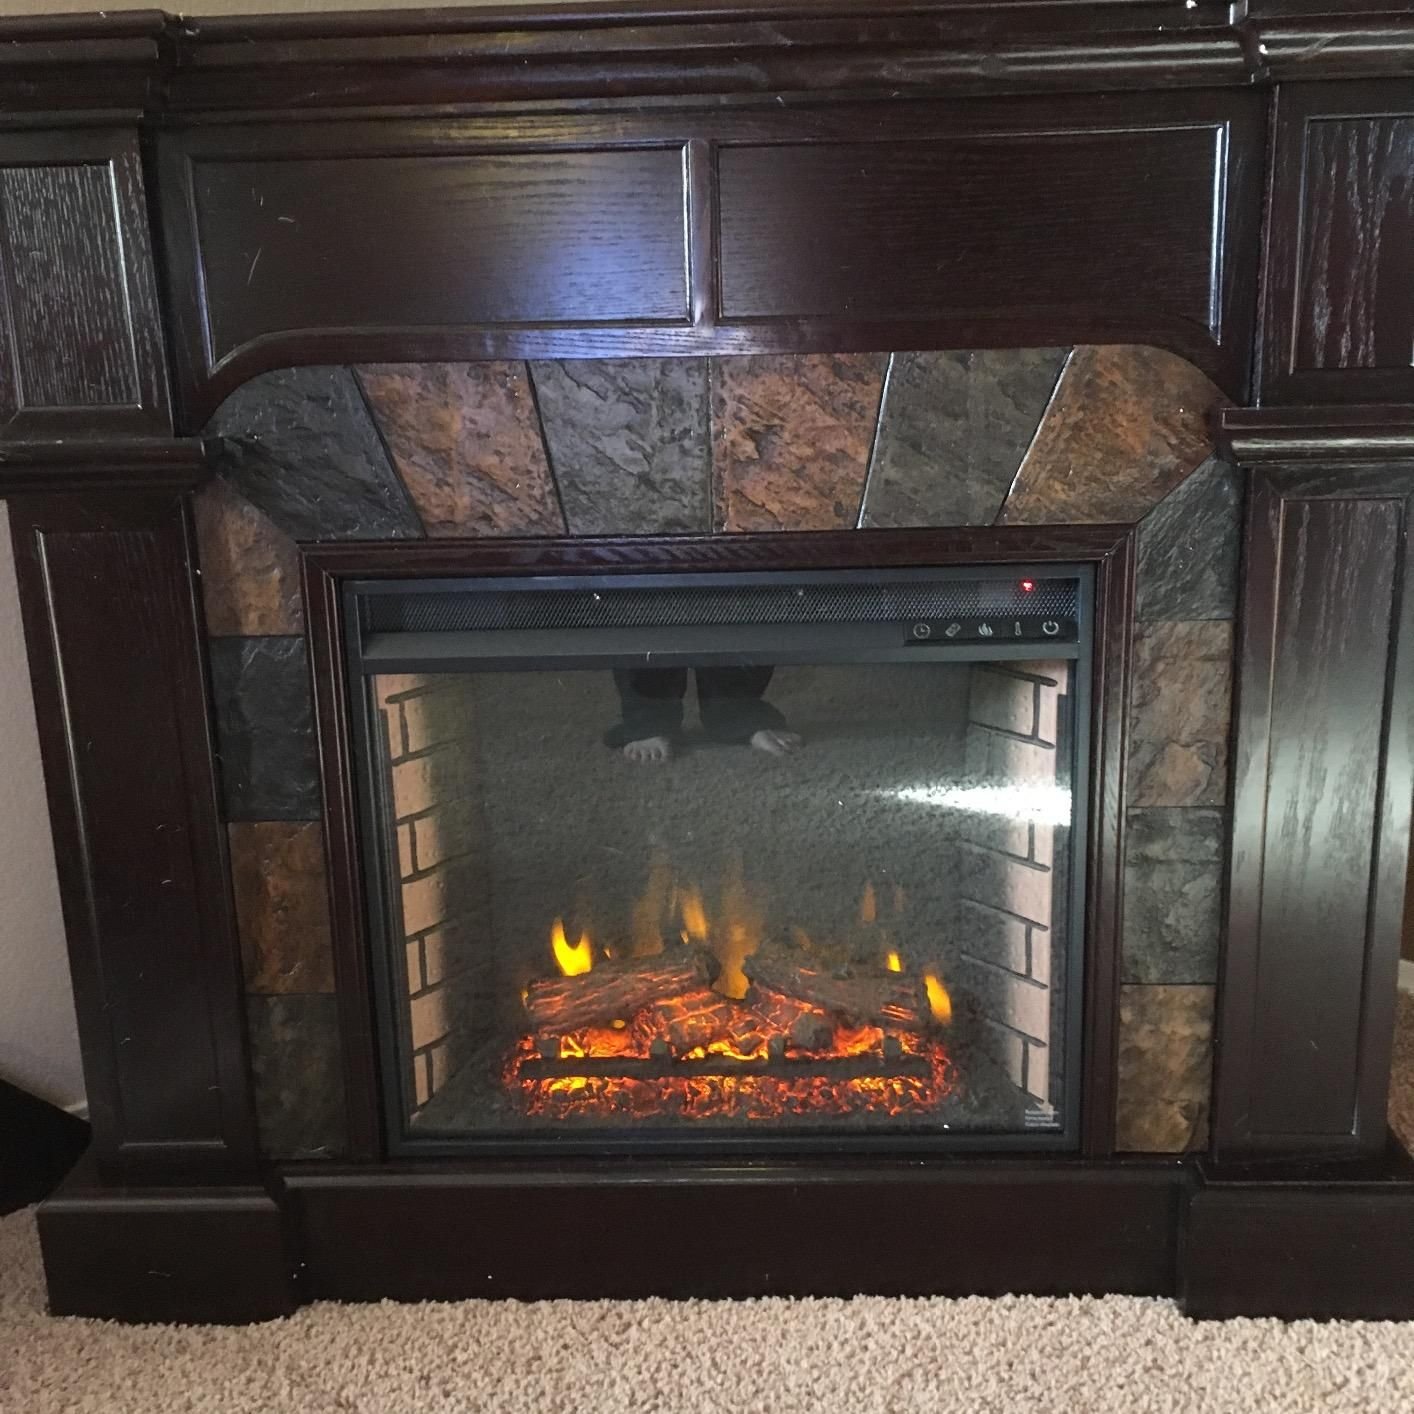 Best Electric Fireplace Reviews In 2019 Best Electric Fireplace Electric Fireplace Electric Fireplace With Mantel